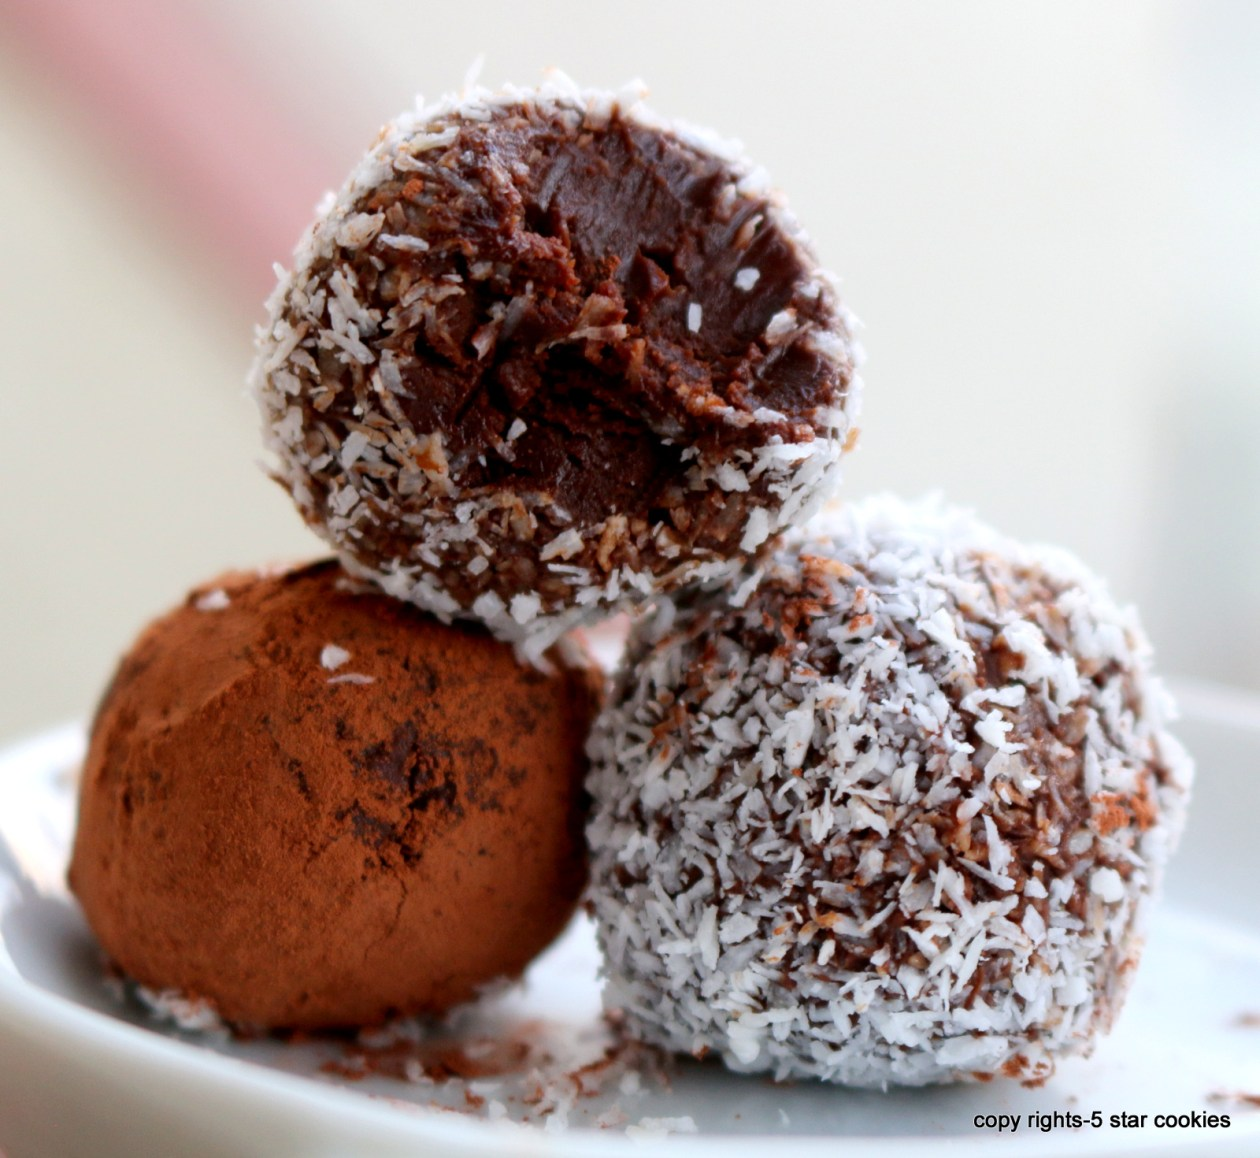 chocolate truffle from the best food blog 5starcookies-enjoy and share